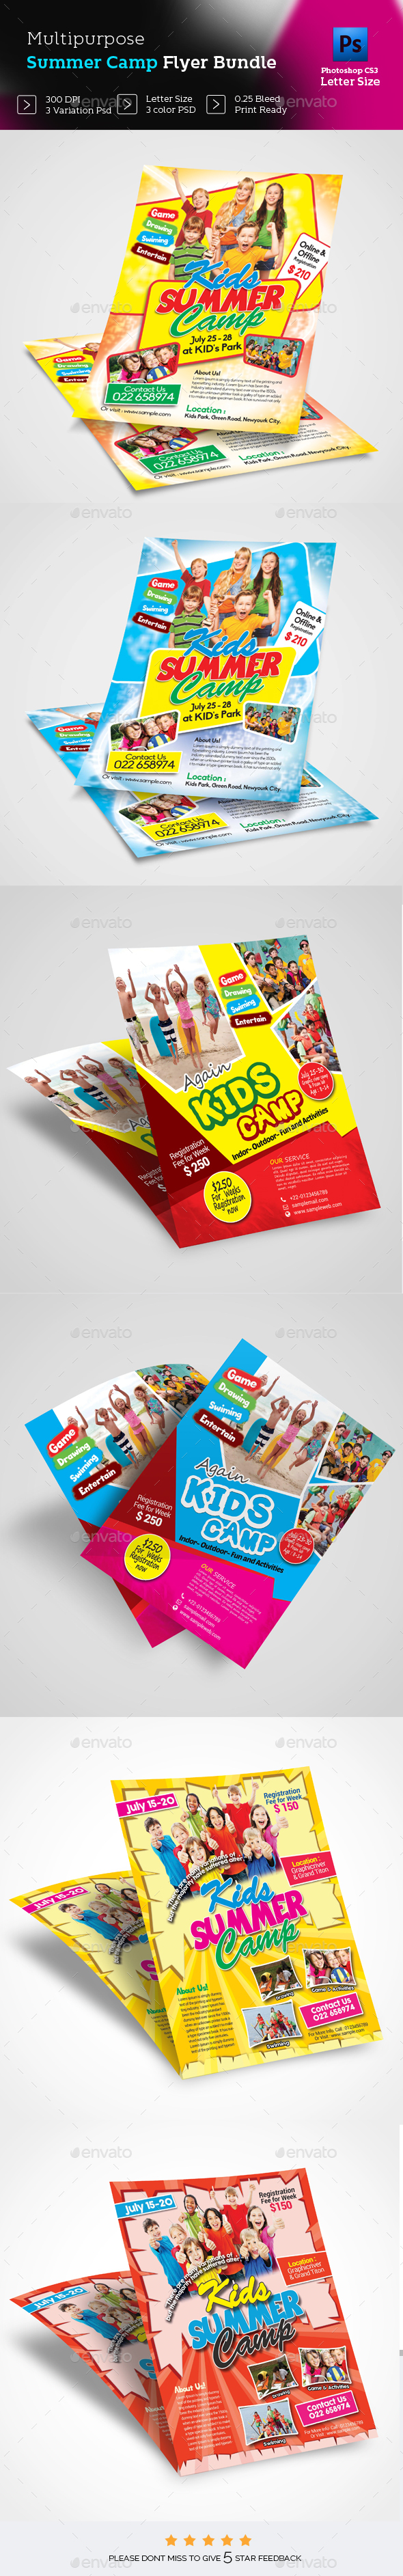 Kids Summer Camp Flyer Bundle - Flyers Print Templates